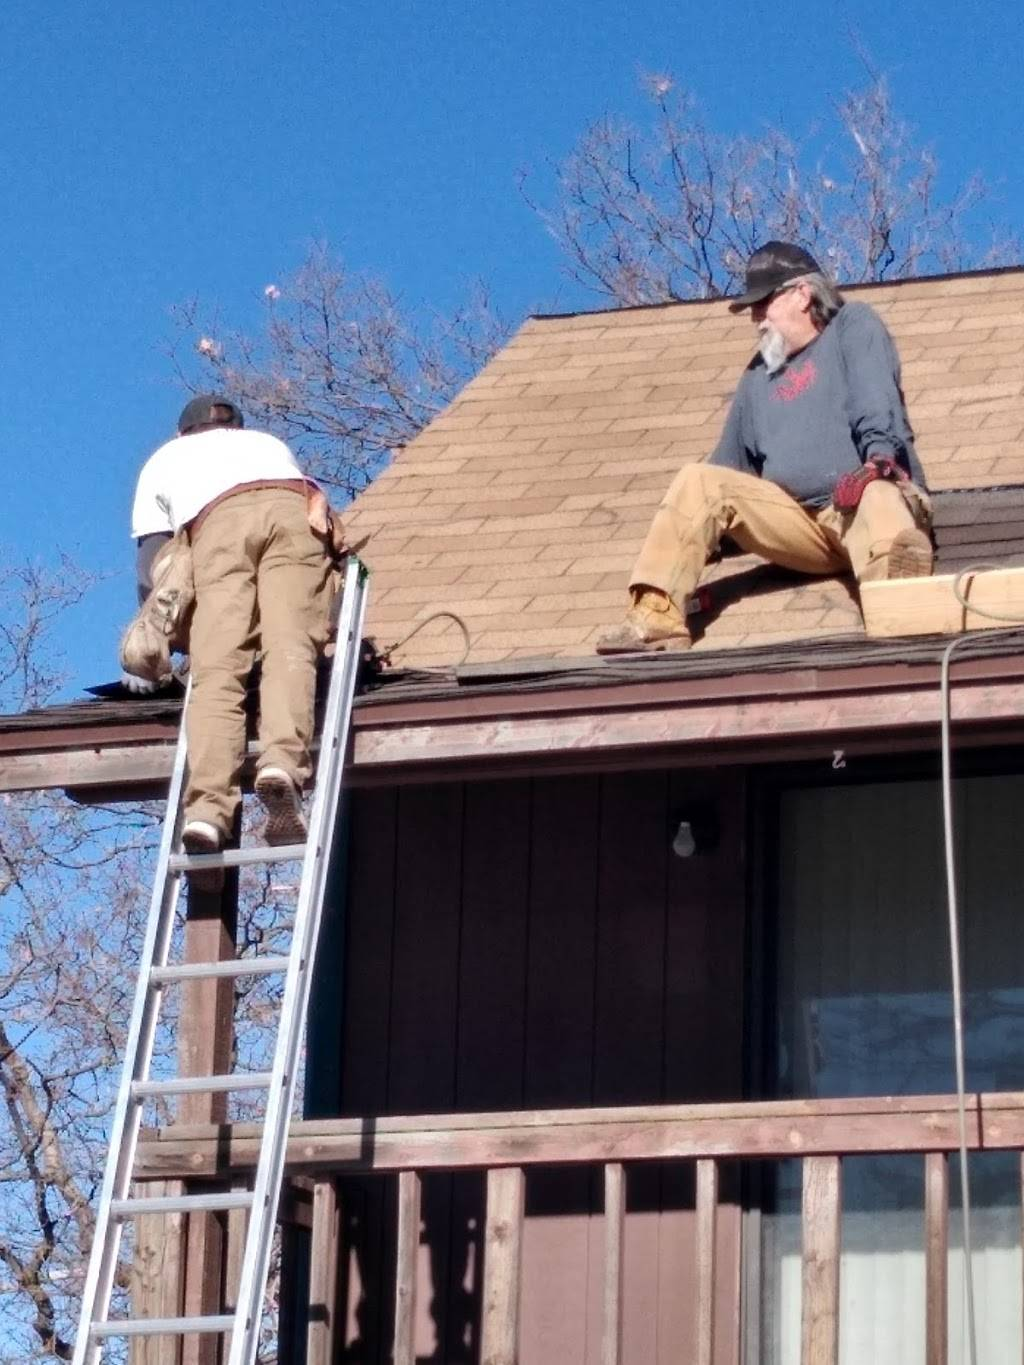 Giuntoli Roofing Co - roofing contractor  | Photo 1 of 1 | Address: 8816 Gleeson Ct, Bakersfield, CA 93311, USA | Phone: (661) 246-9715